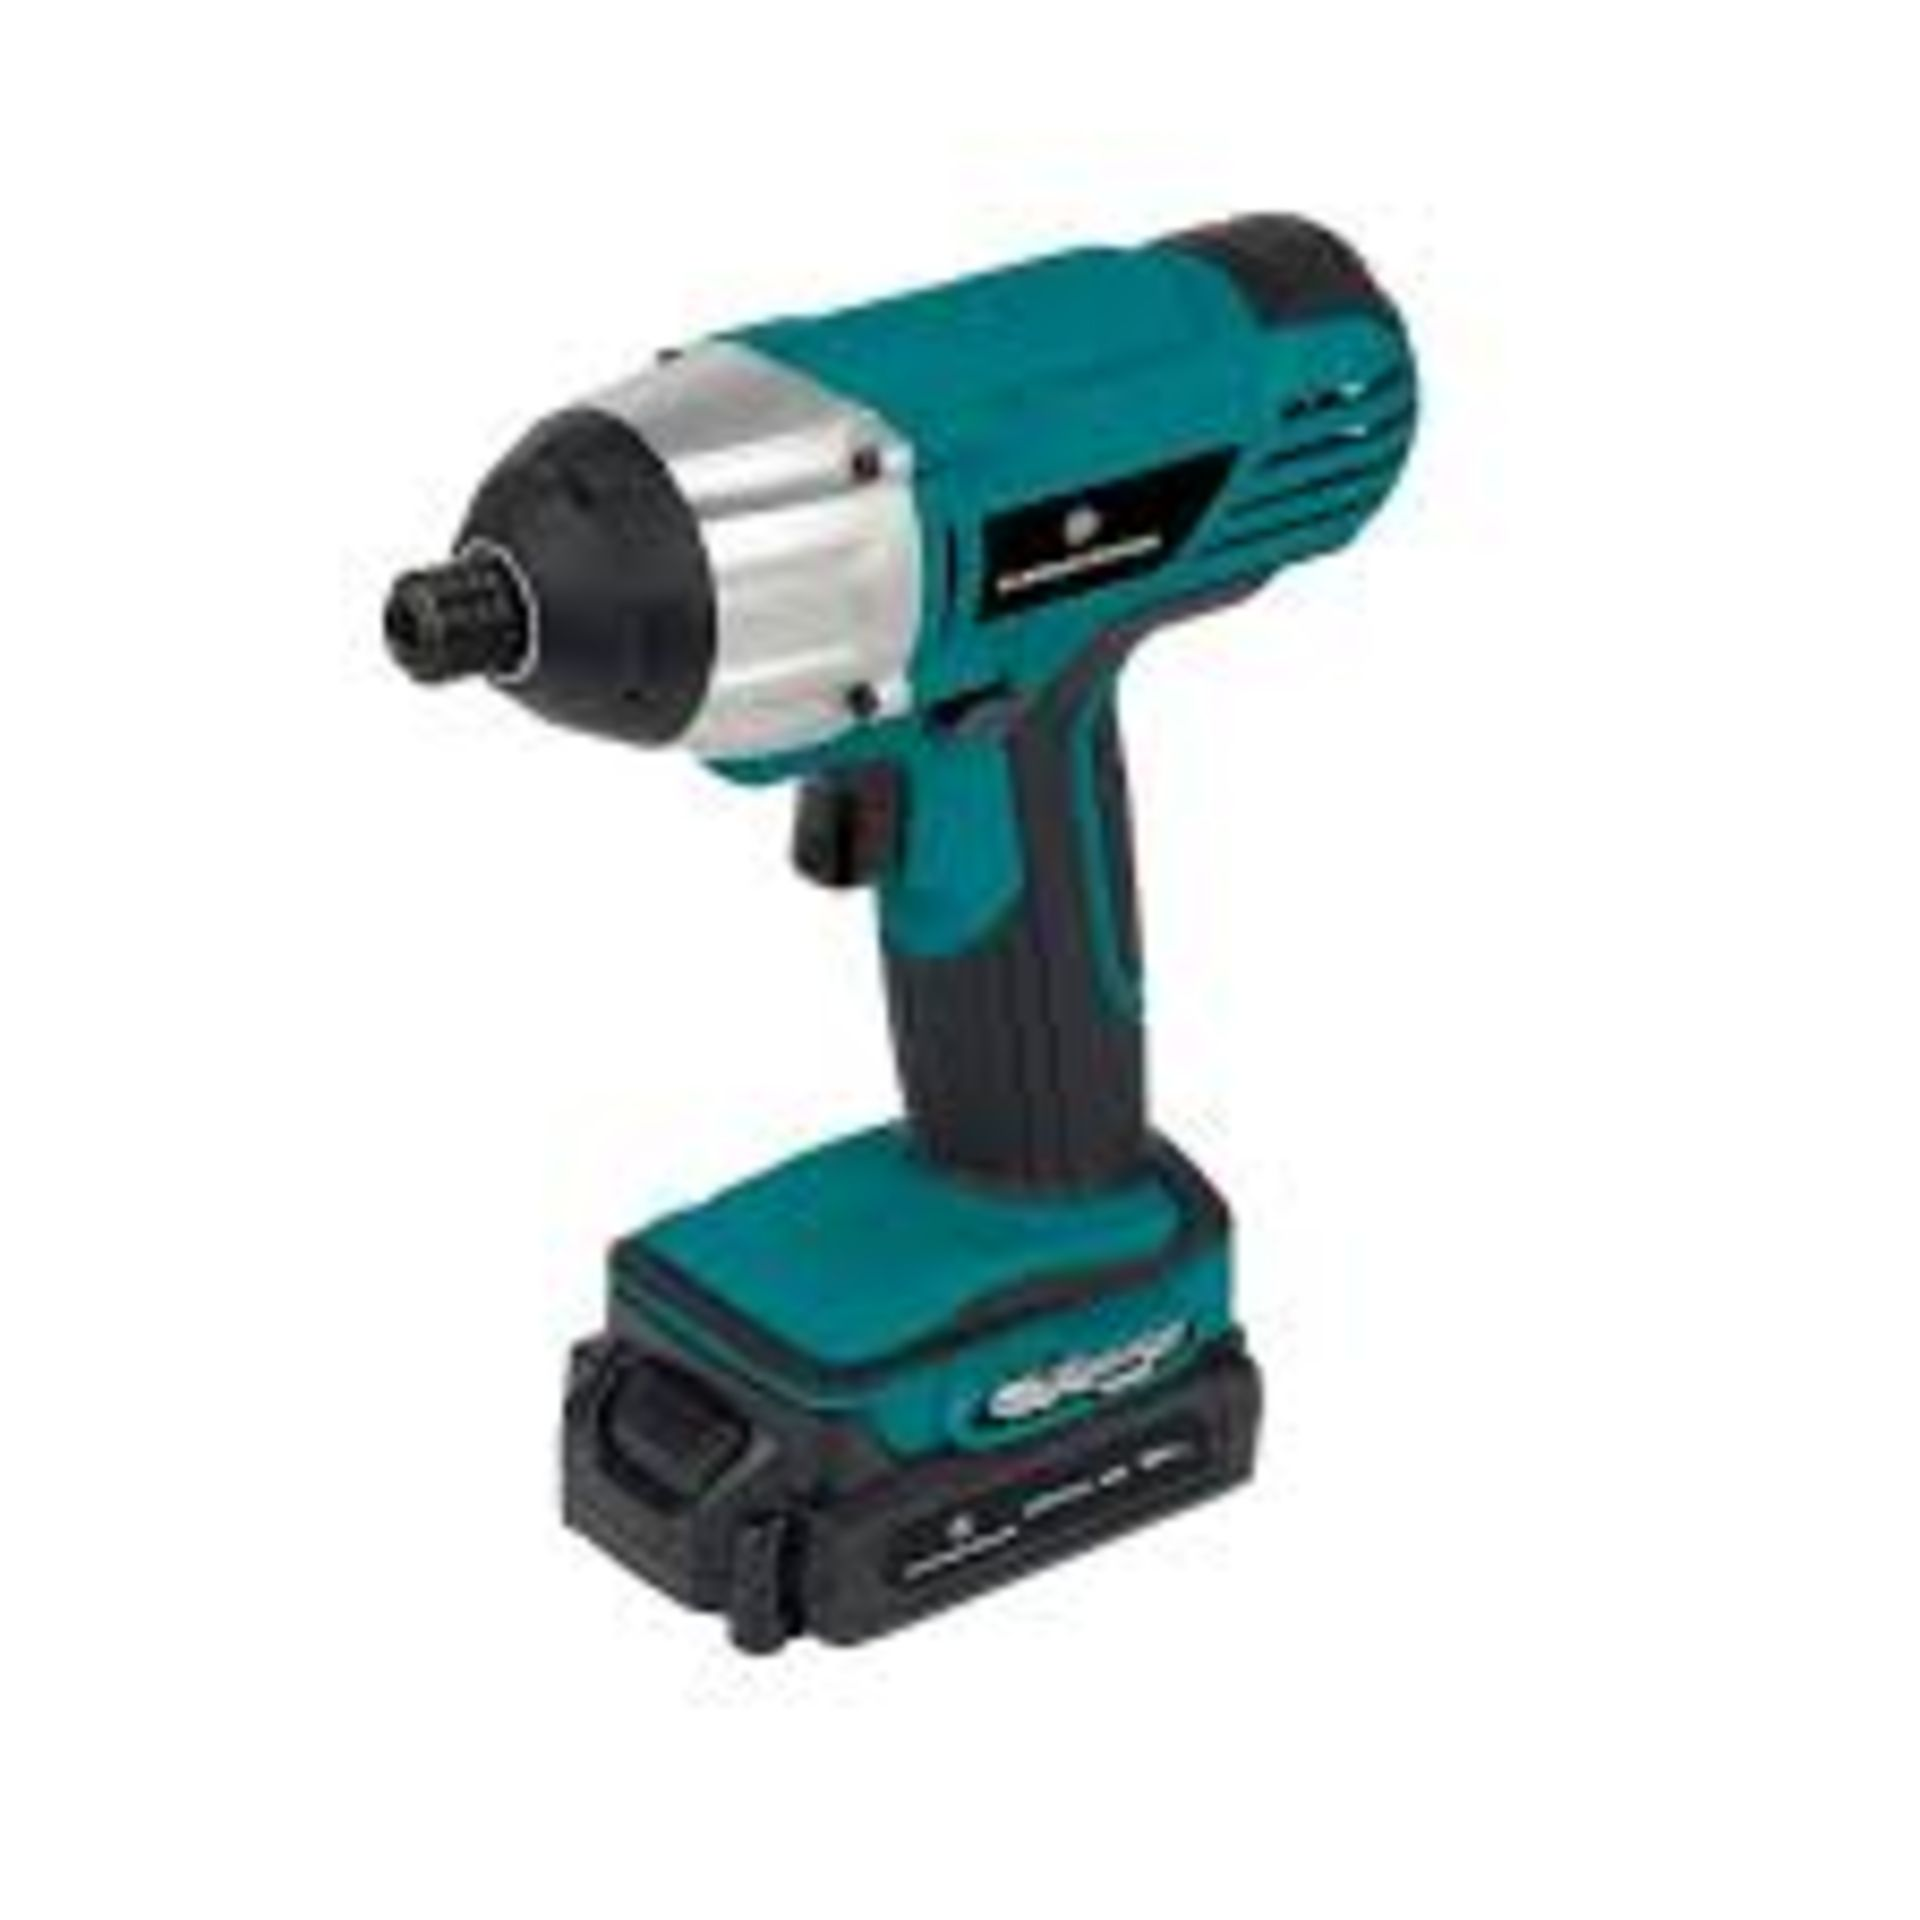 Lot 11768 - + VAT Brand New Schwartzmann 18V Cordless Impact Screwdriver CSD-18SP.541.1